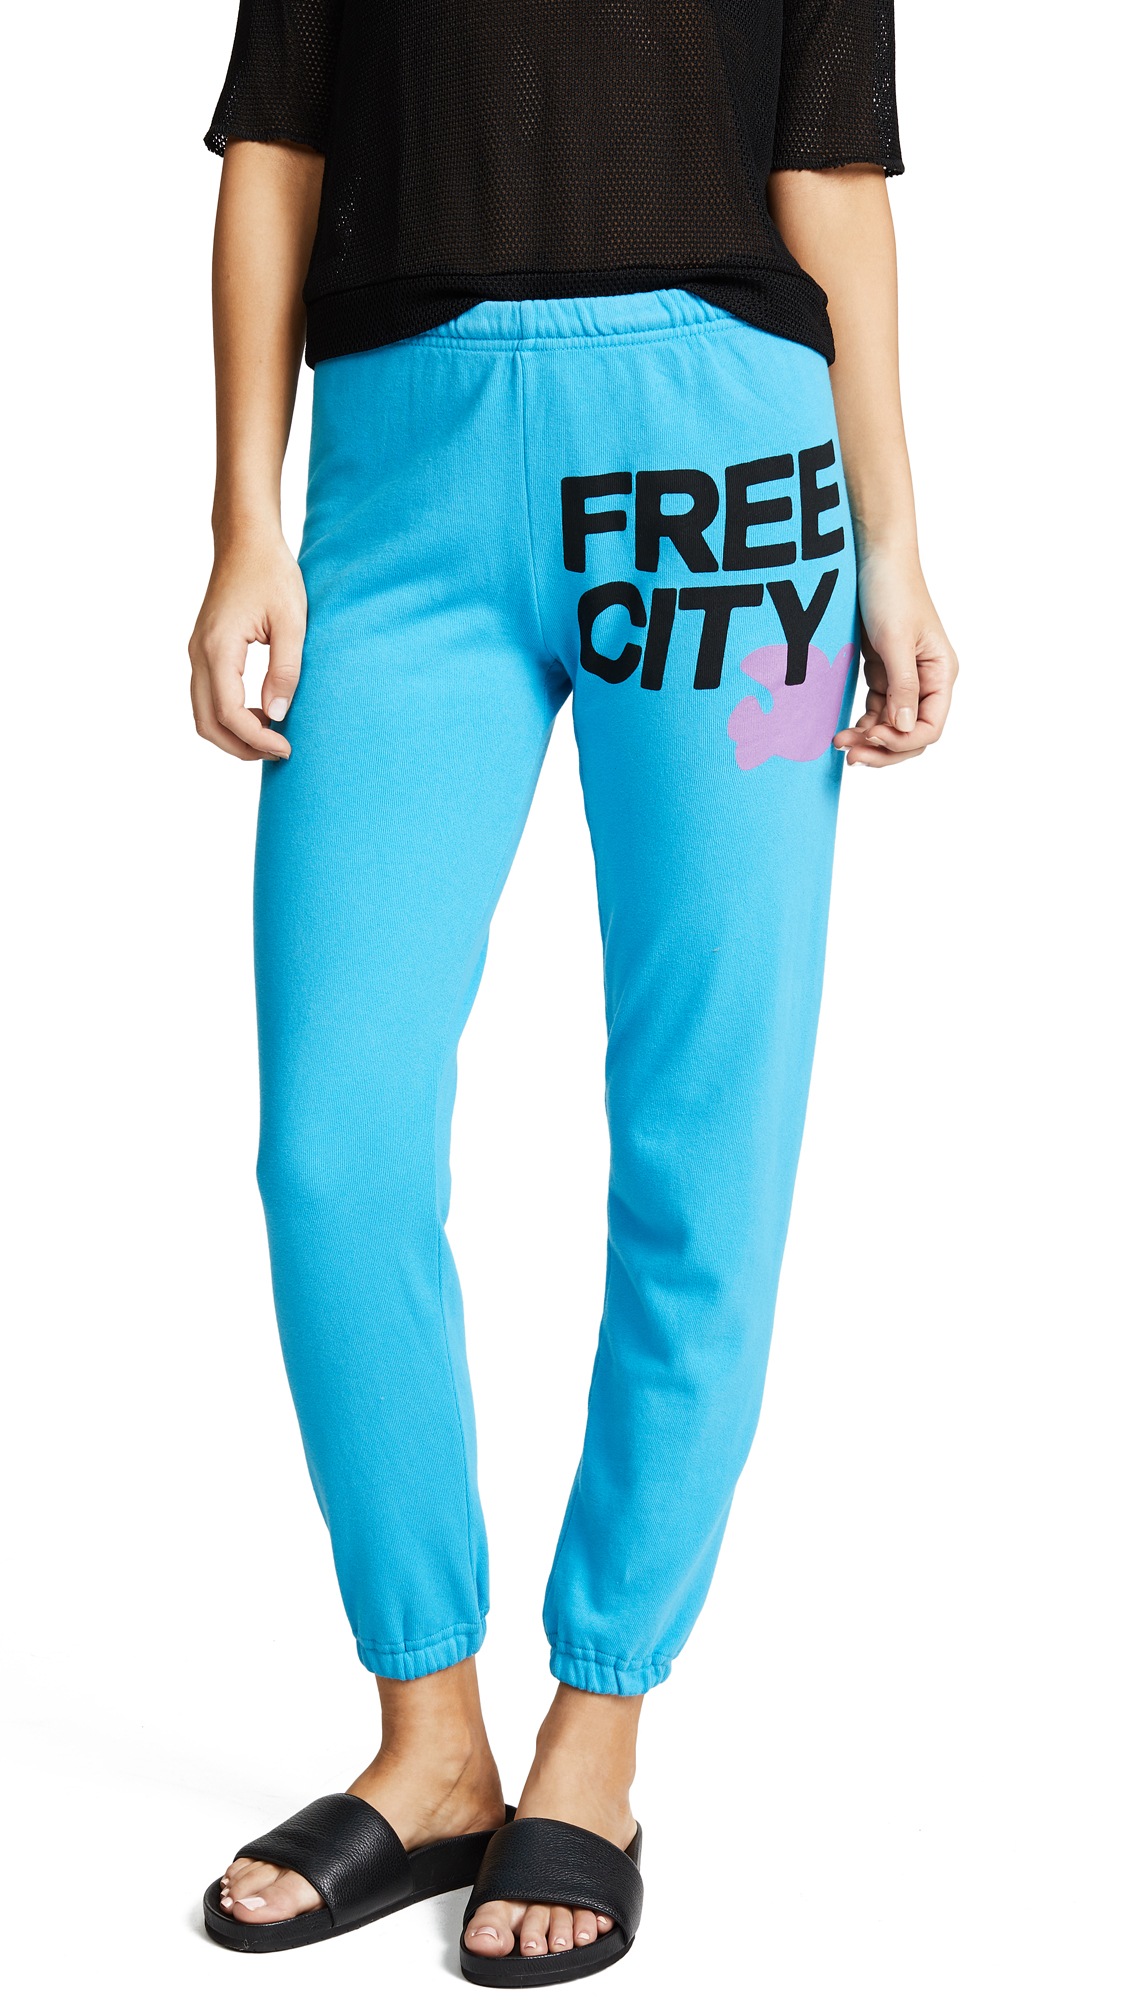 FREECITY Sweatpants